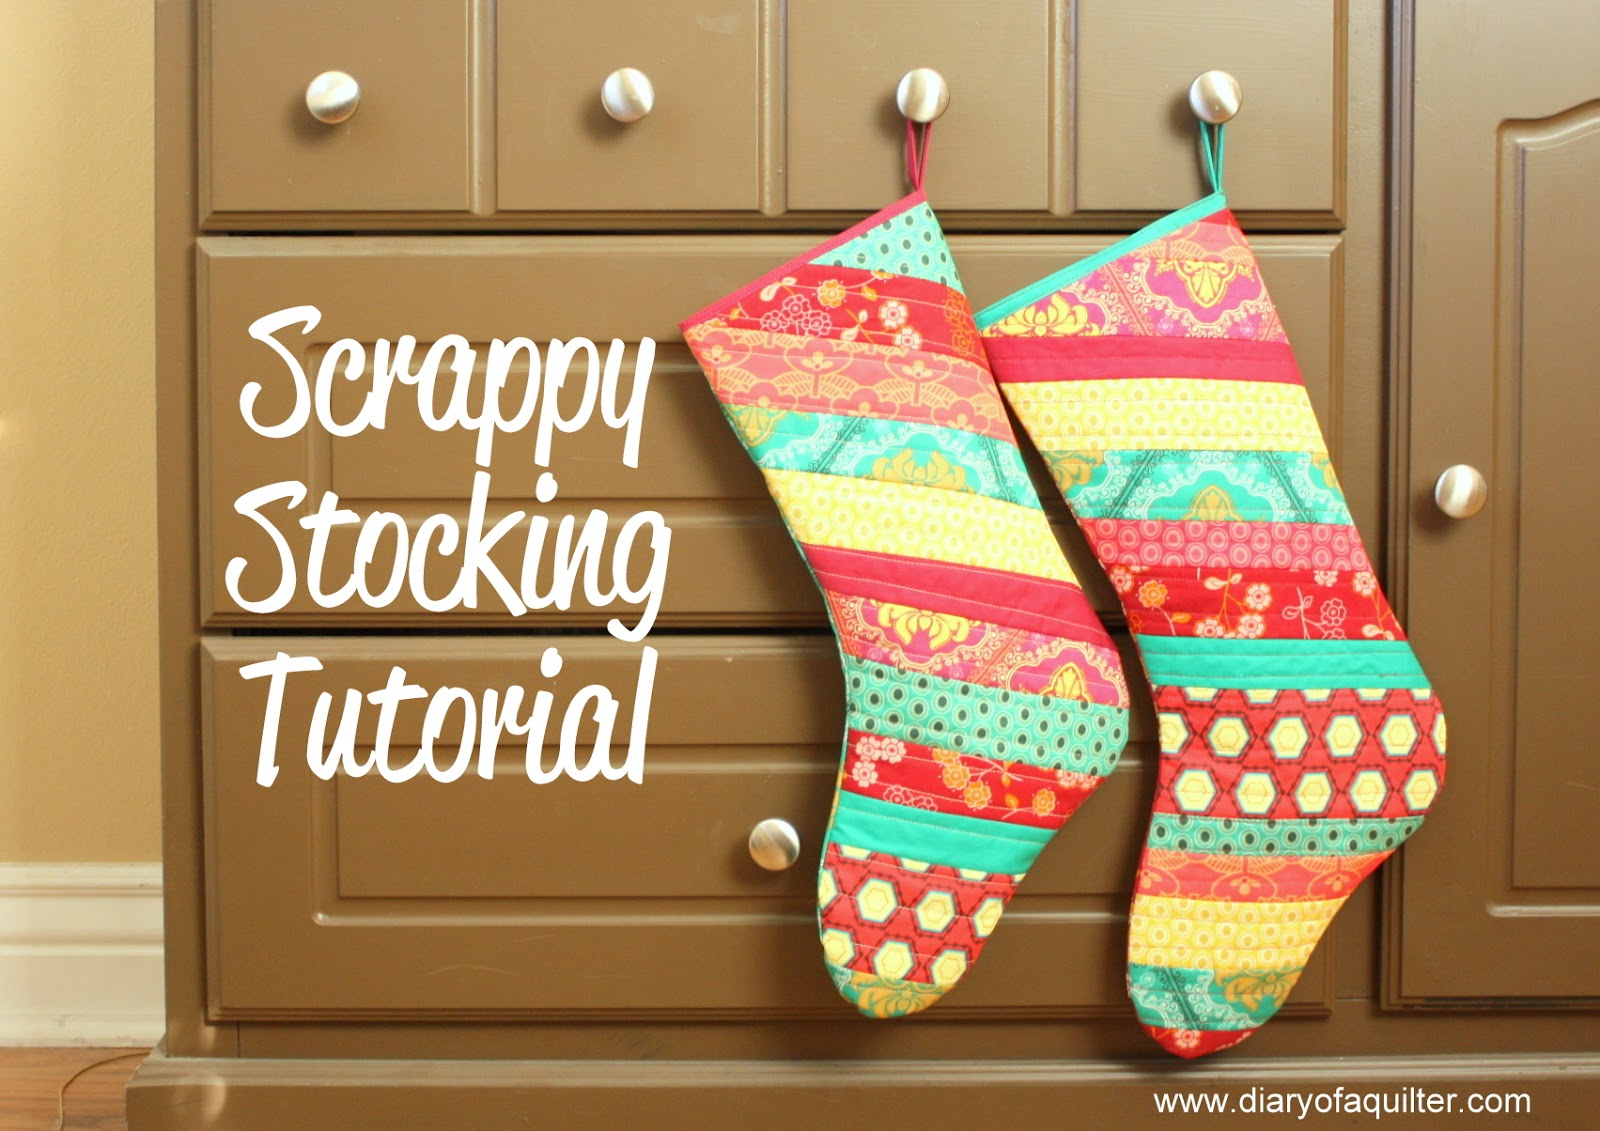 Christmas Stocking Tutorial - Diary of a Quilter - a quilt blog